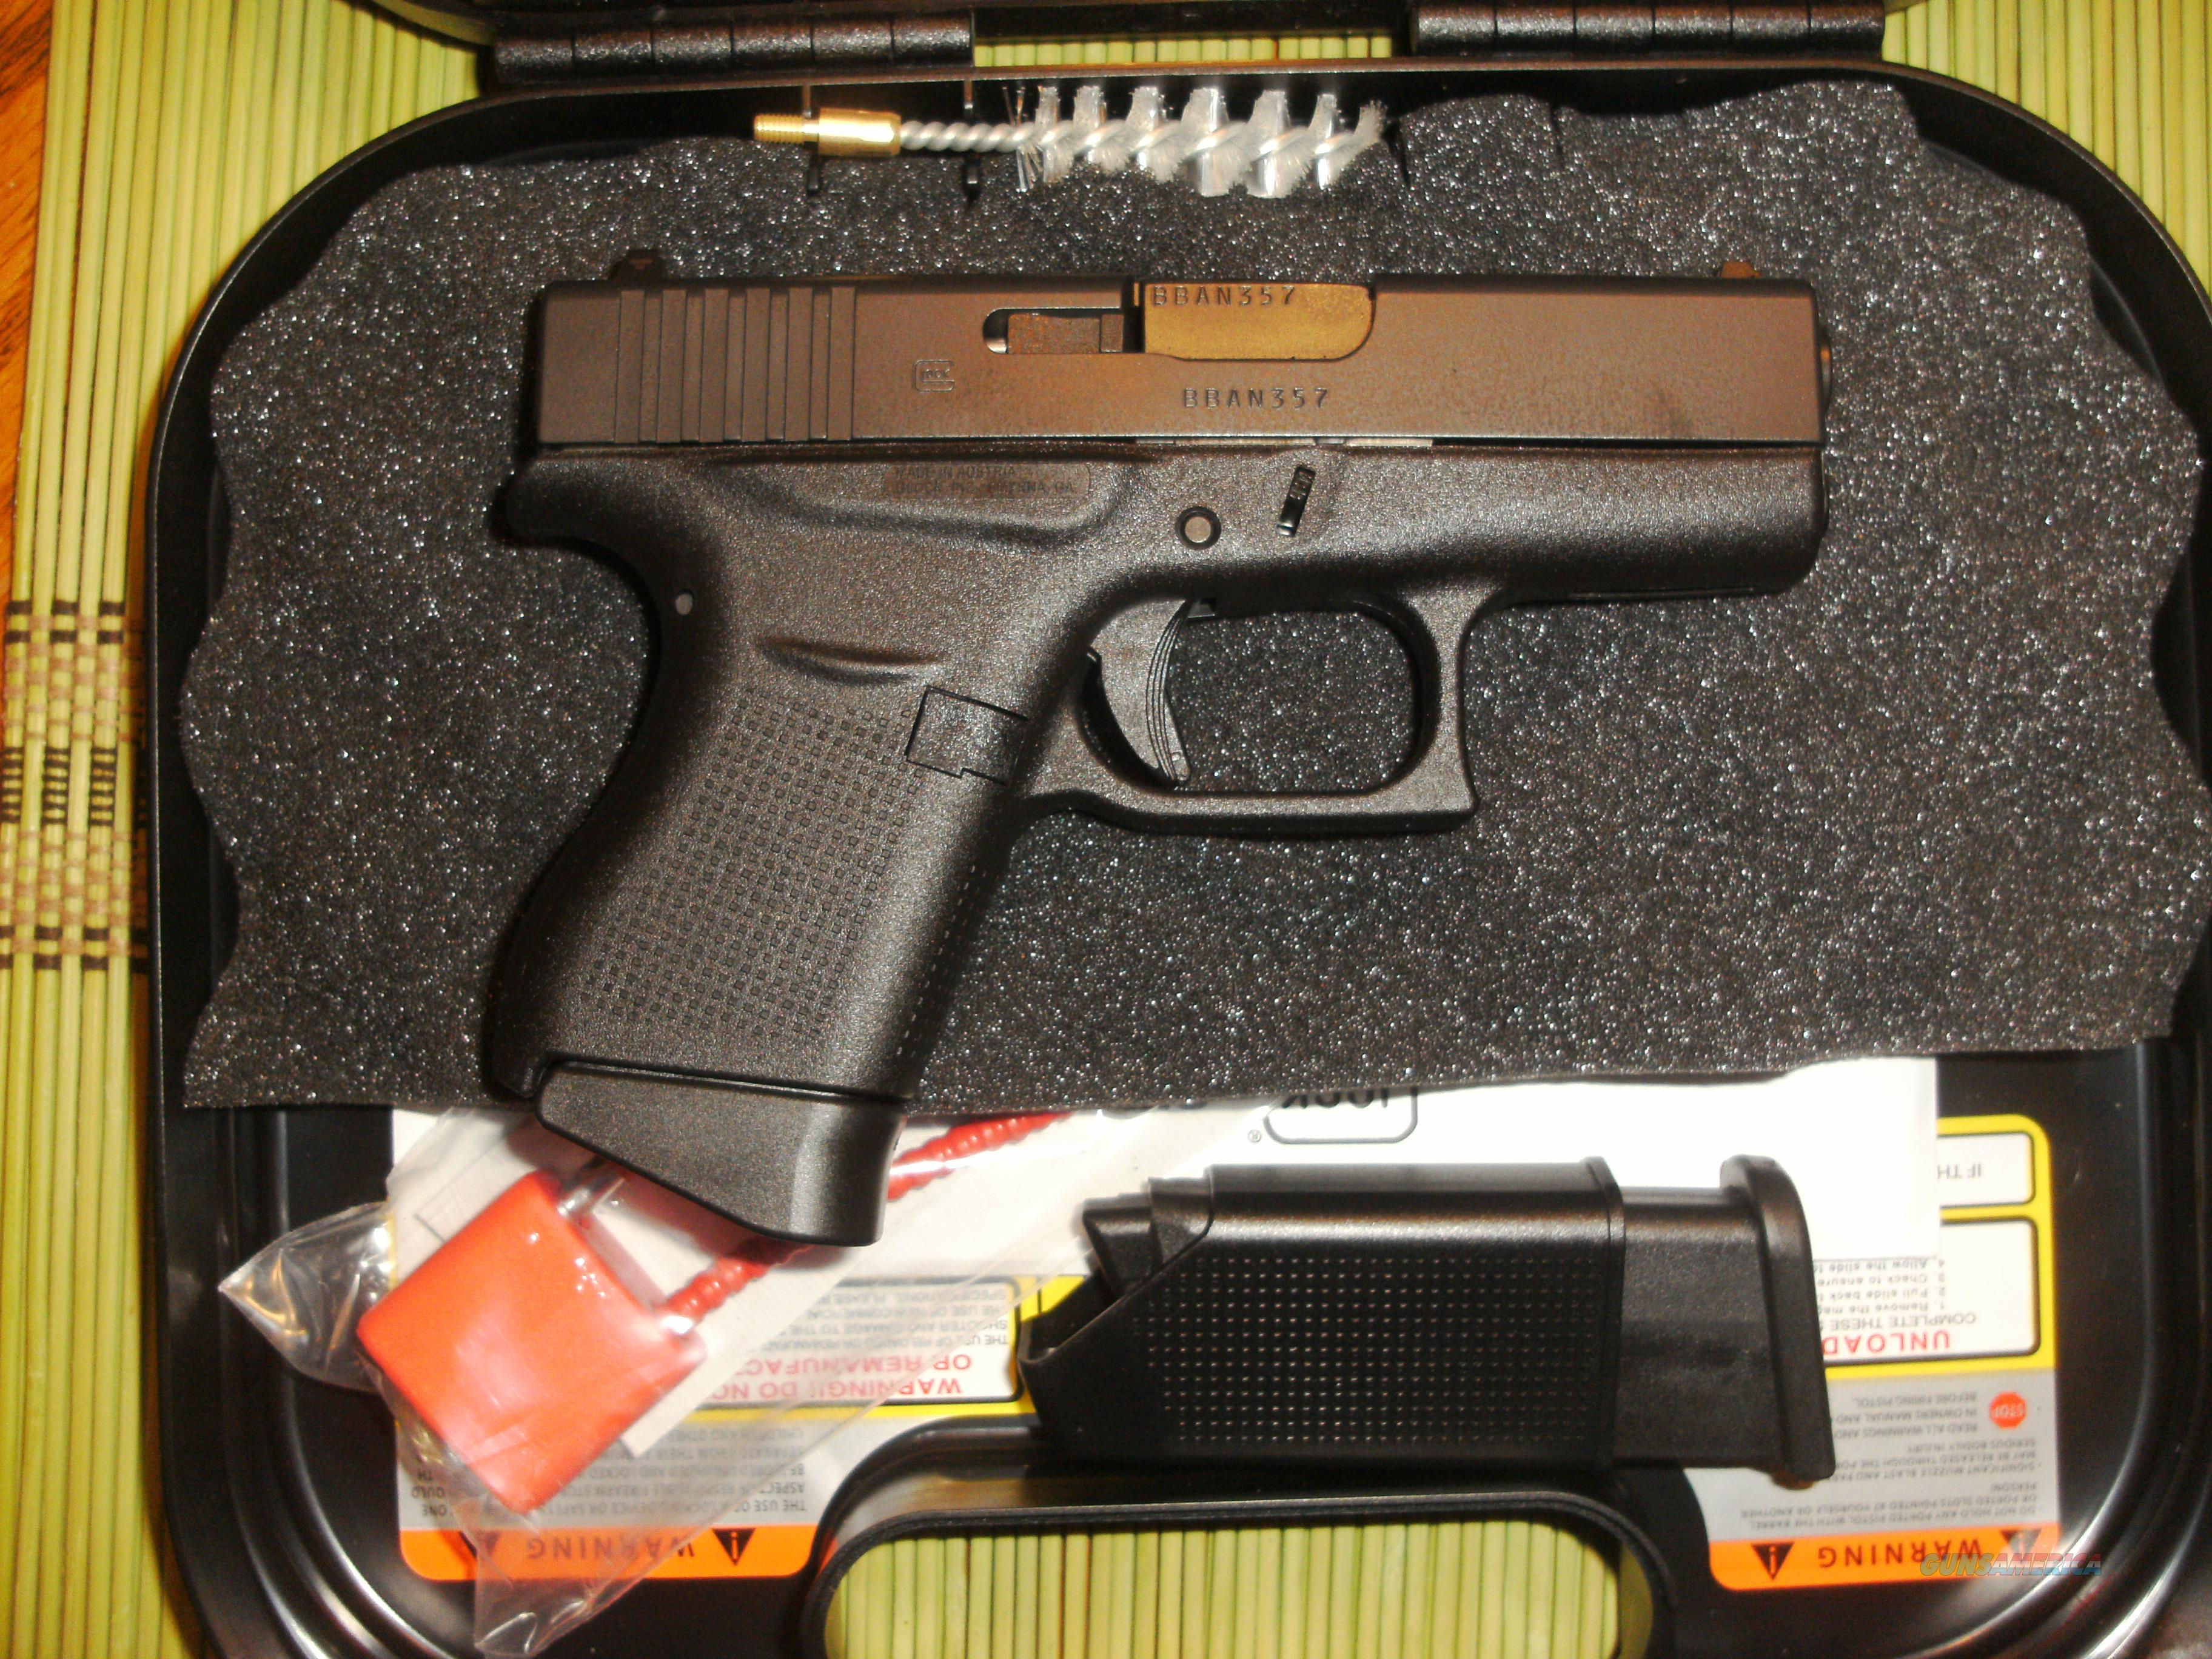 GLOCK 43 - NIB - POCKET 9MM - GREAT CCW PISTOL - FREE SHIPPING - ACT NOW! THESE SELL FAST! - TXPAT ARMORY LLC  Guns > Pistols > Glock Pistols > 43